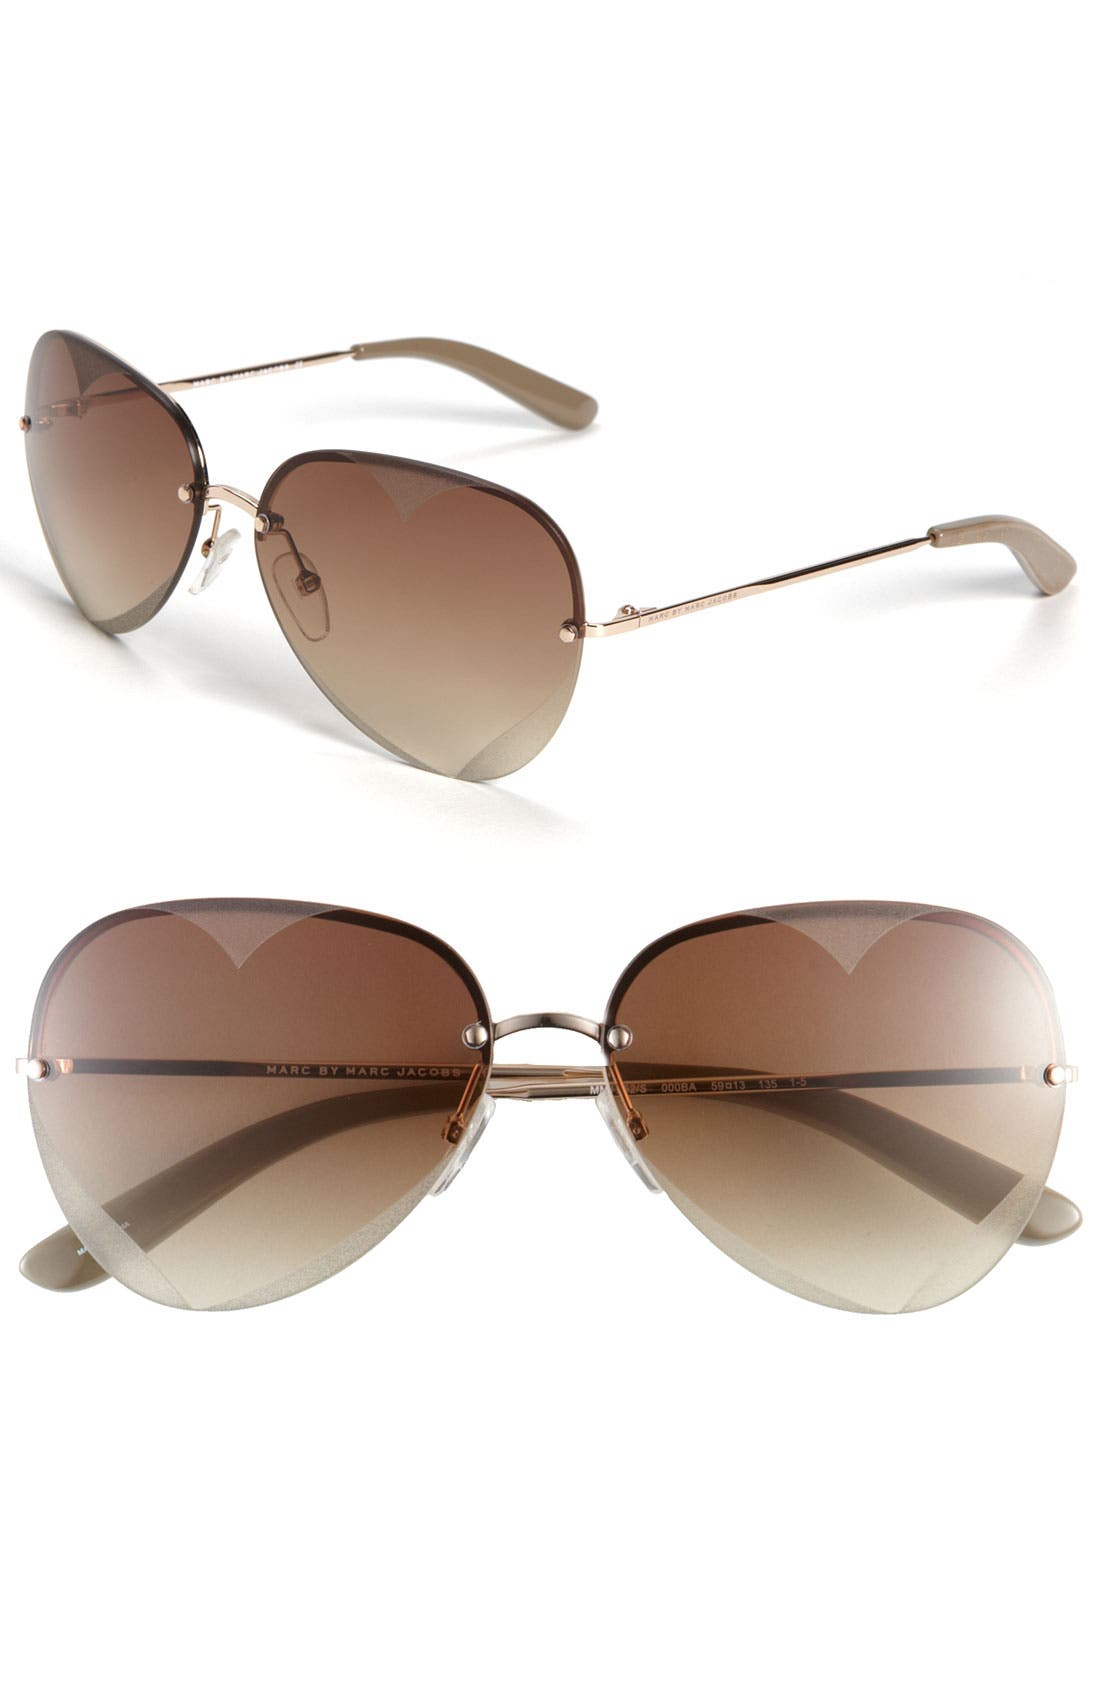 Main Image - MARC BY MARC JACOBS Rimless Sunglasses